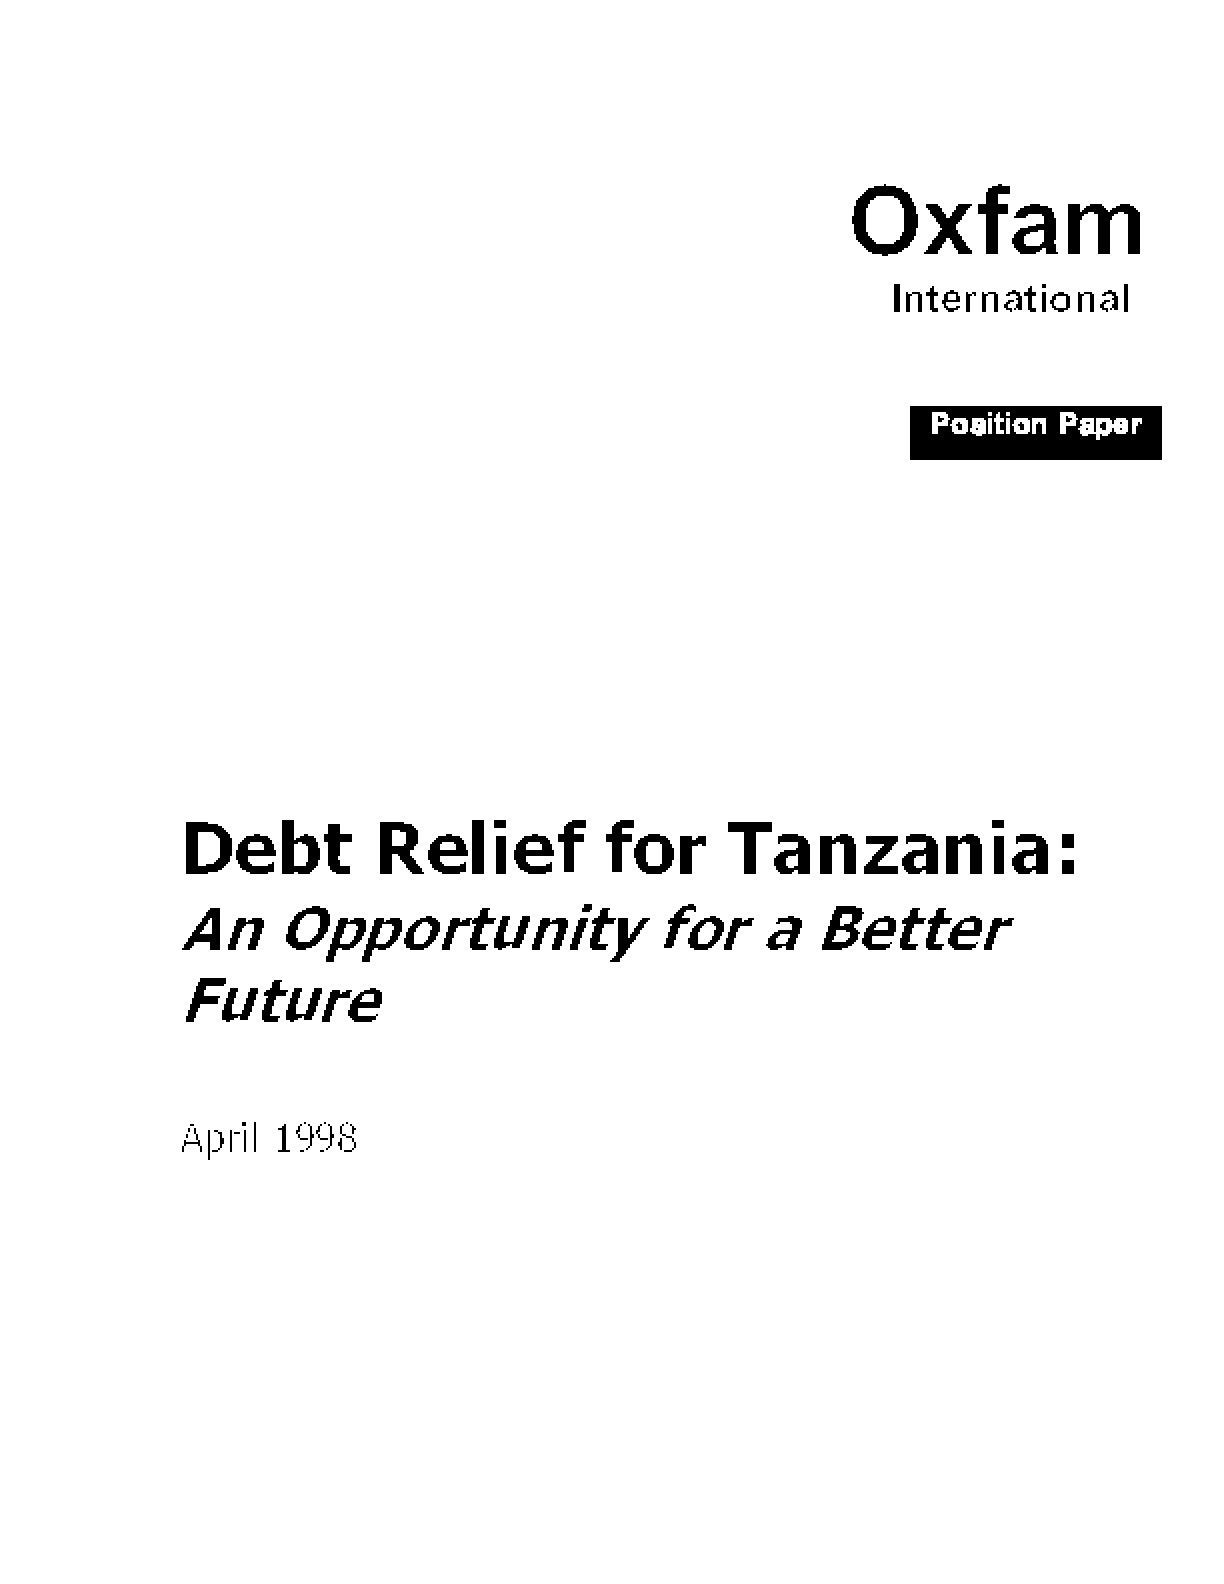 Debt Relief for Tanzania: An Opportunity for a Better Future